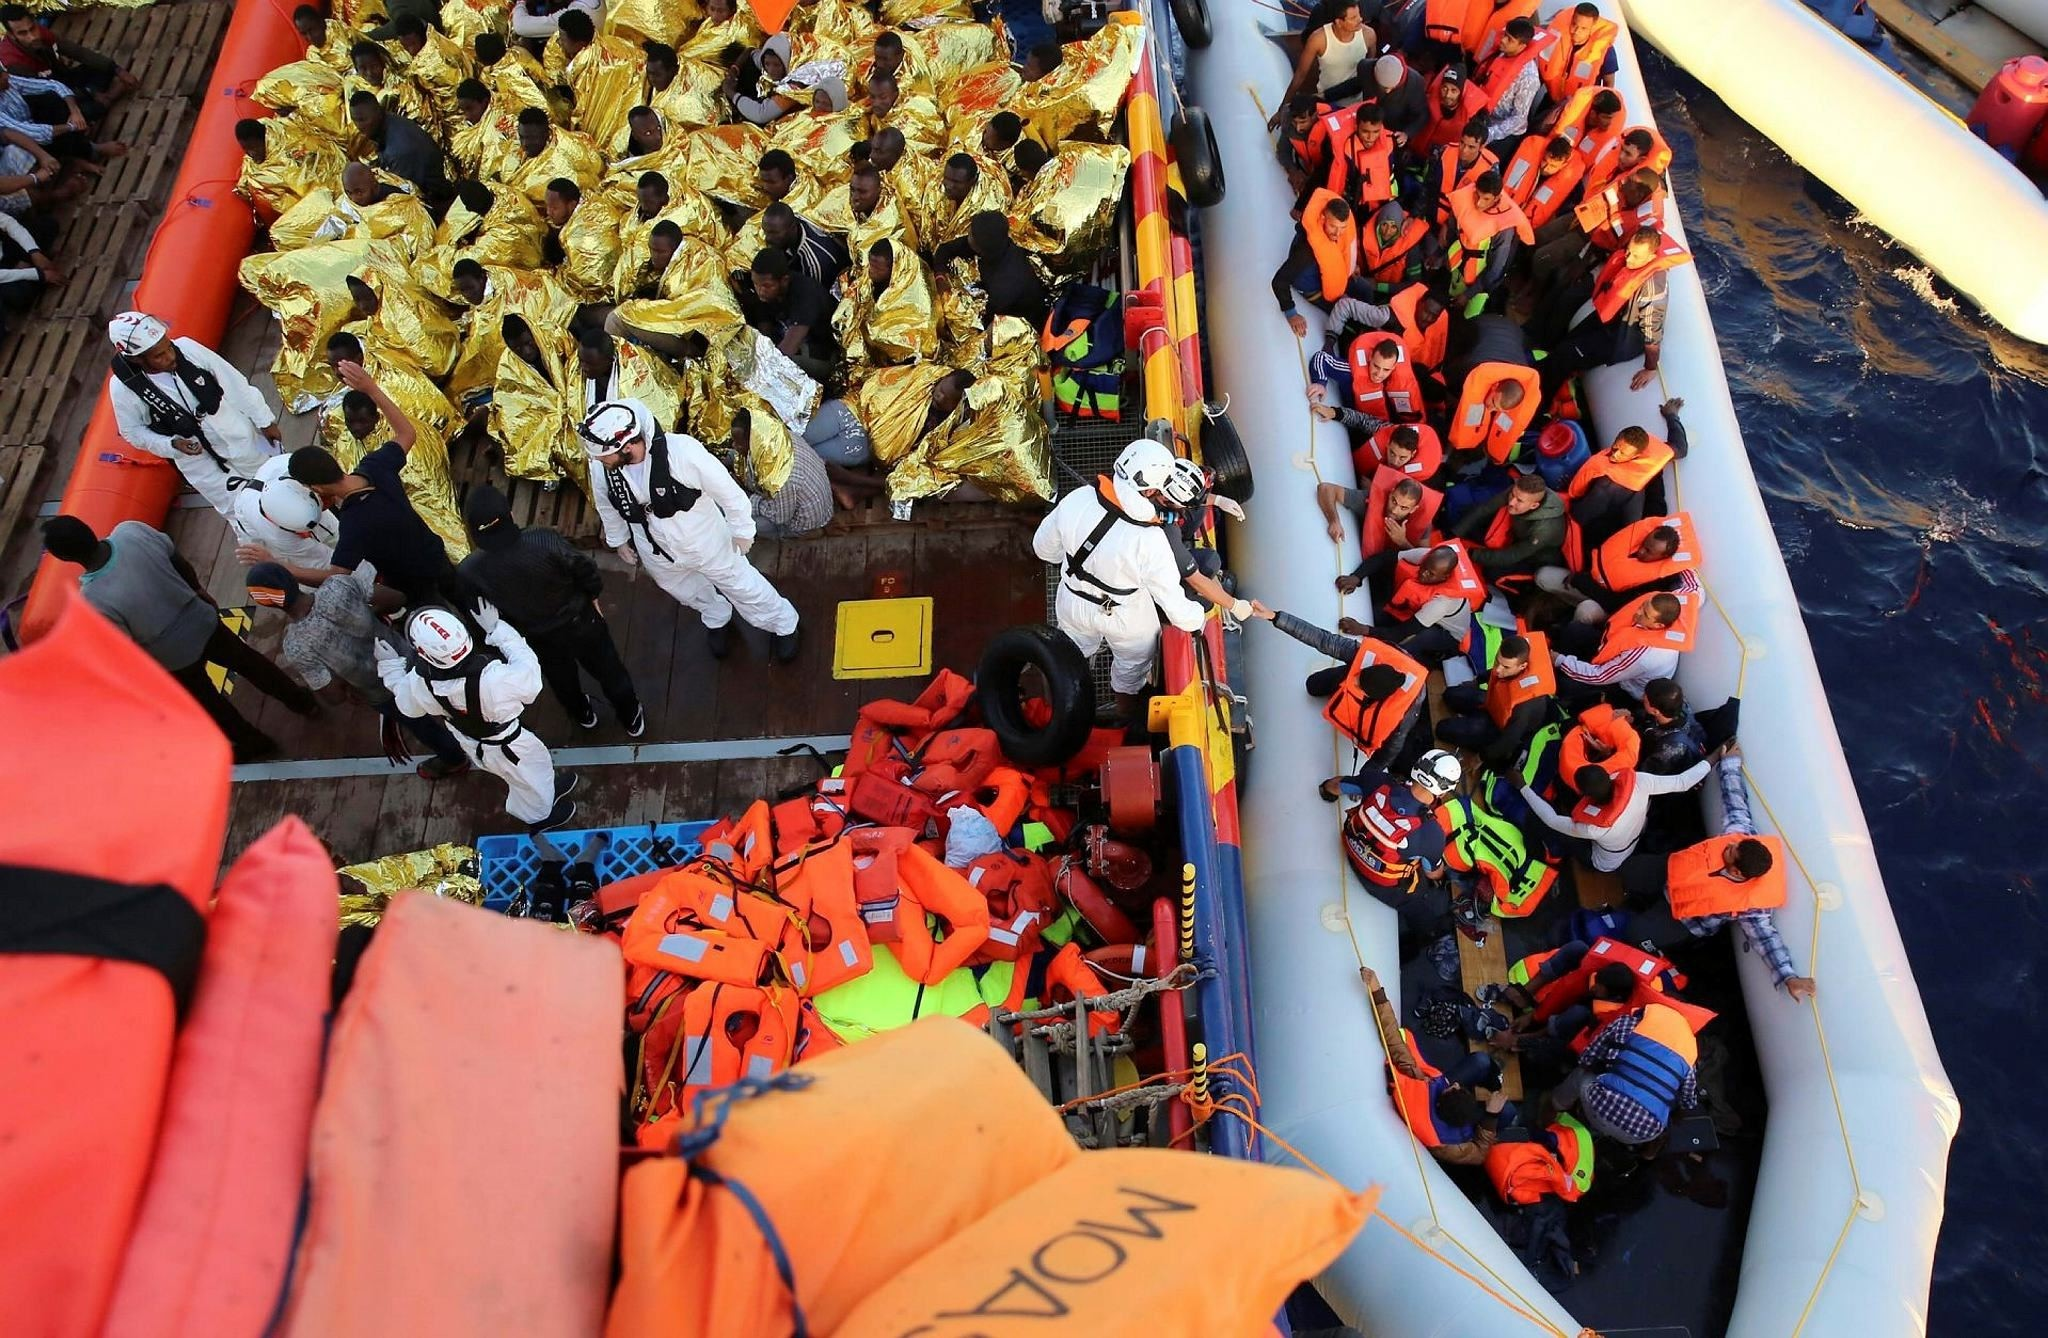 Migrants cover themselves with emergency blankets after being rescued by the vessel Responder. (AP Photo)